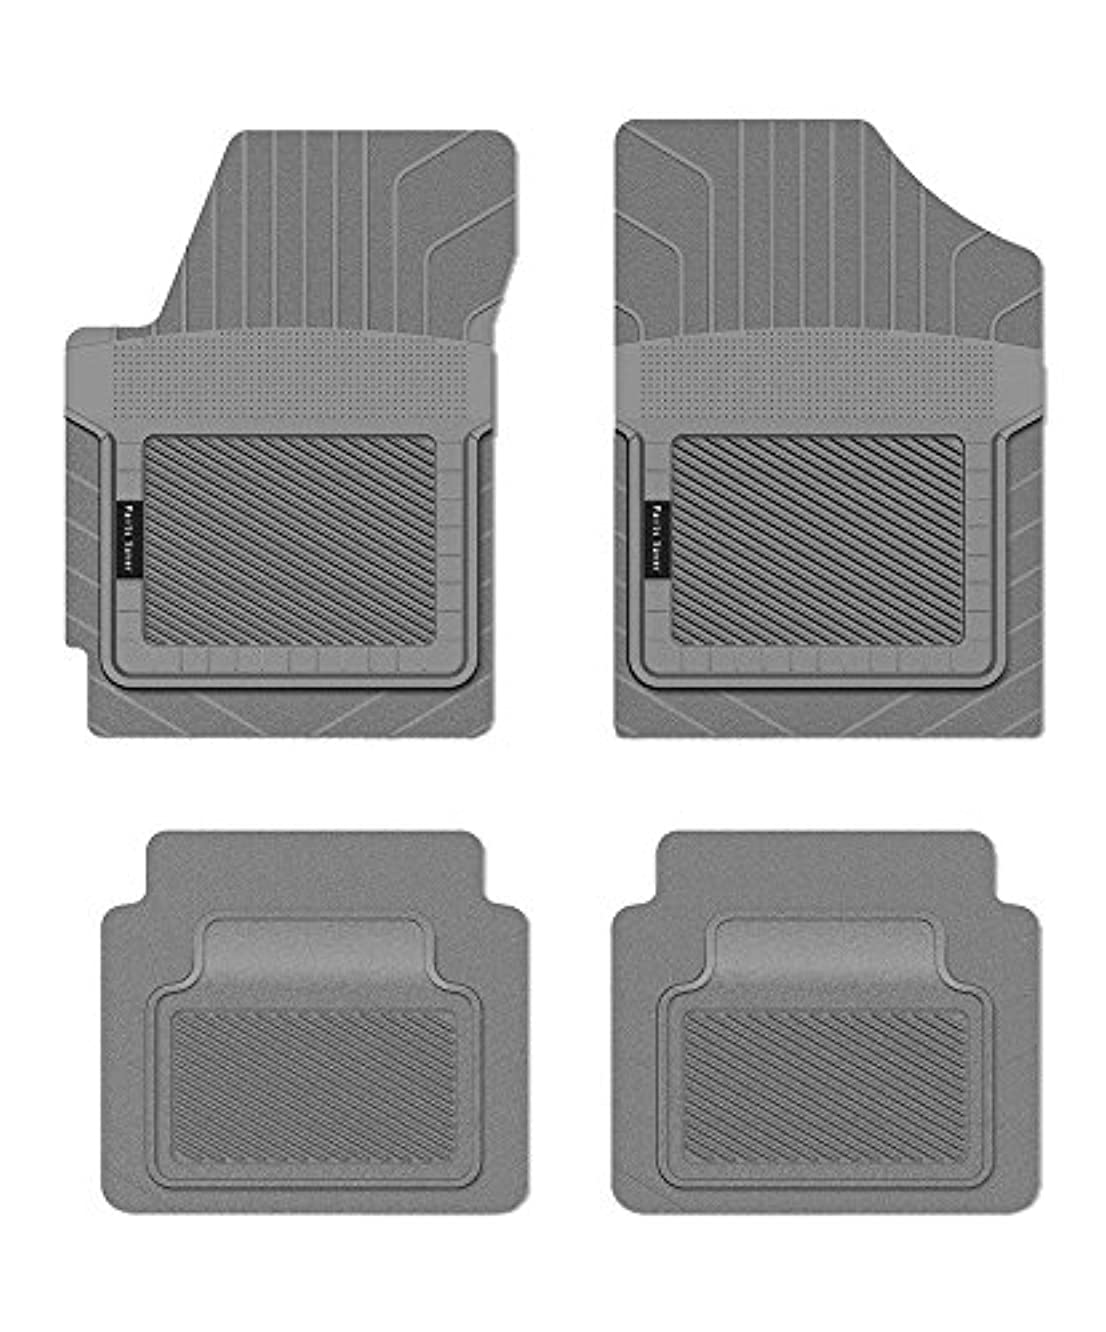 PantsSaver (2904162) Custom Fit Car Mat 4PC - Gray